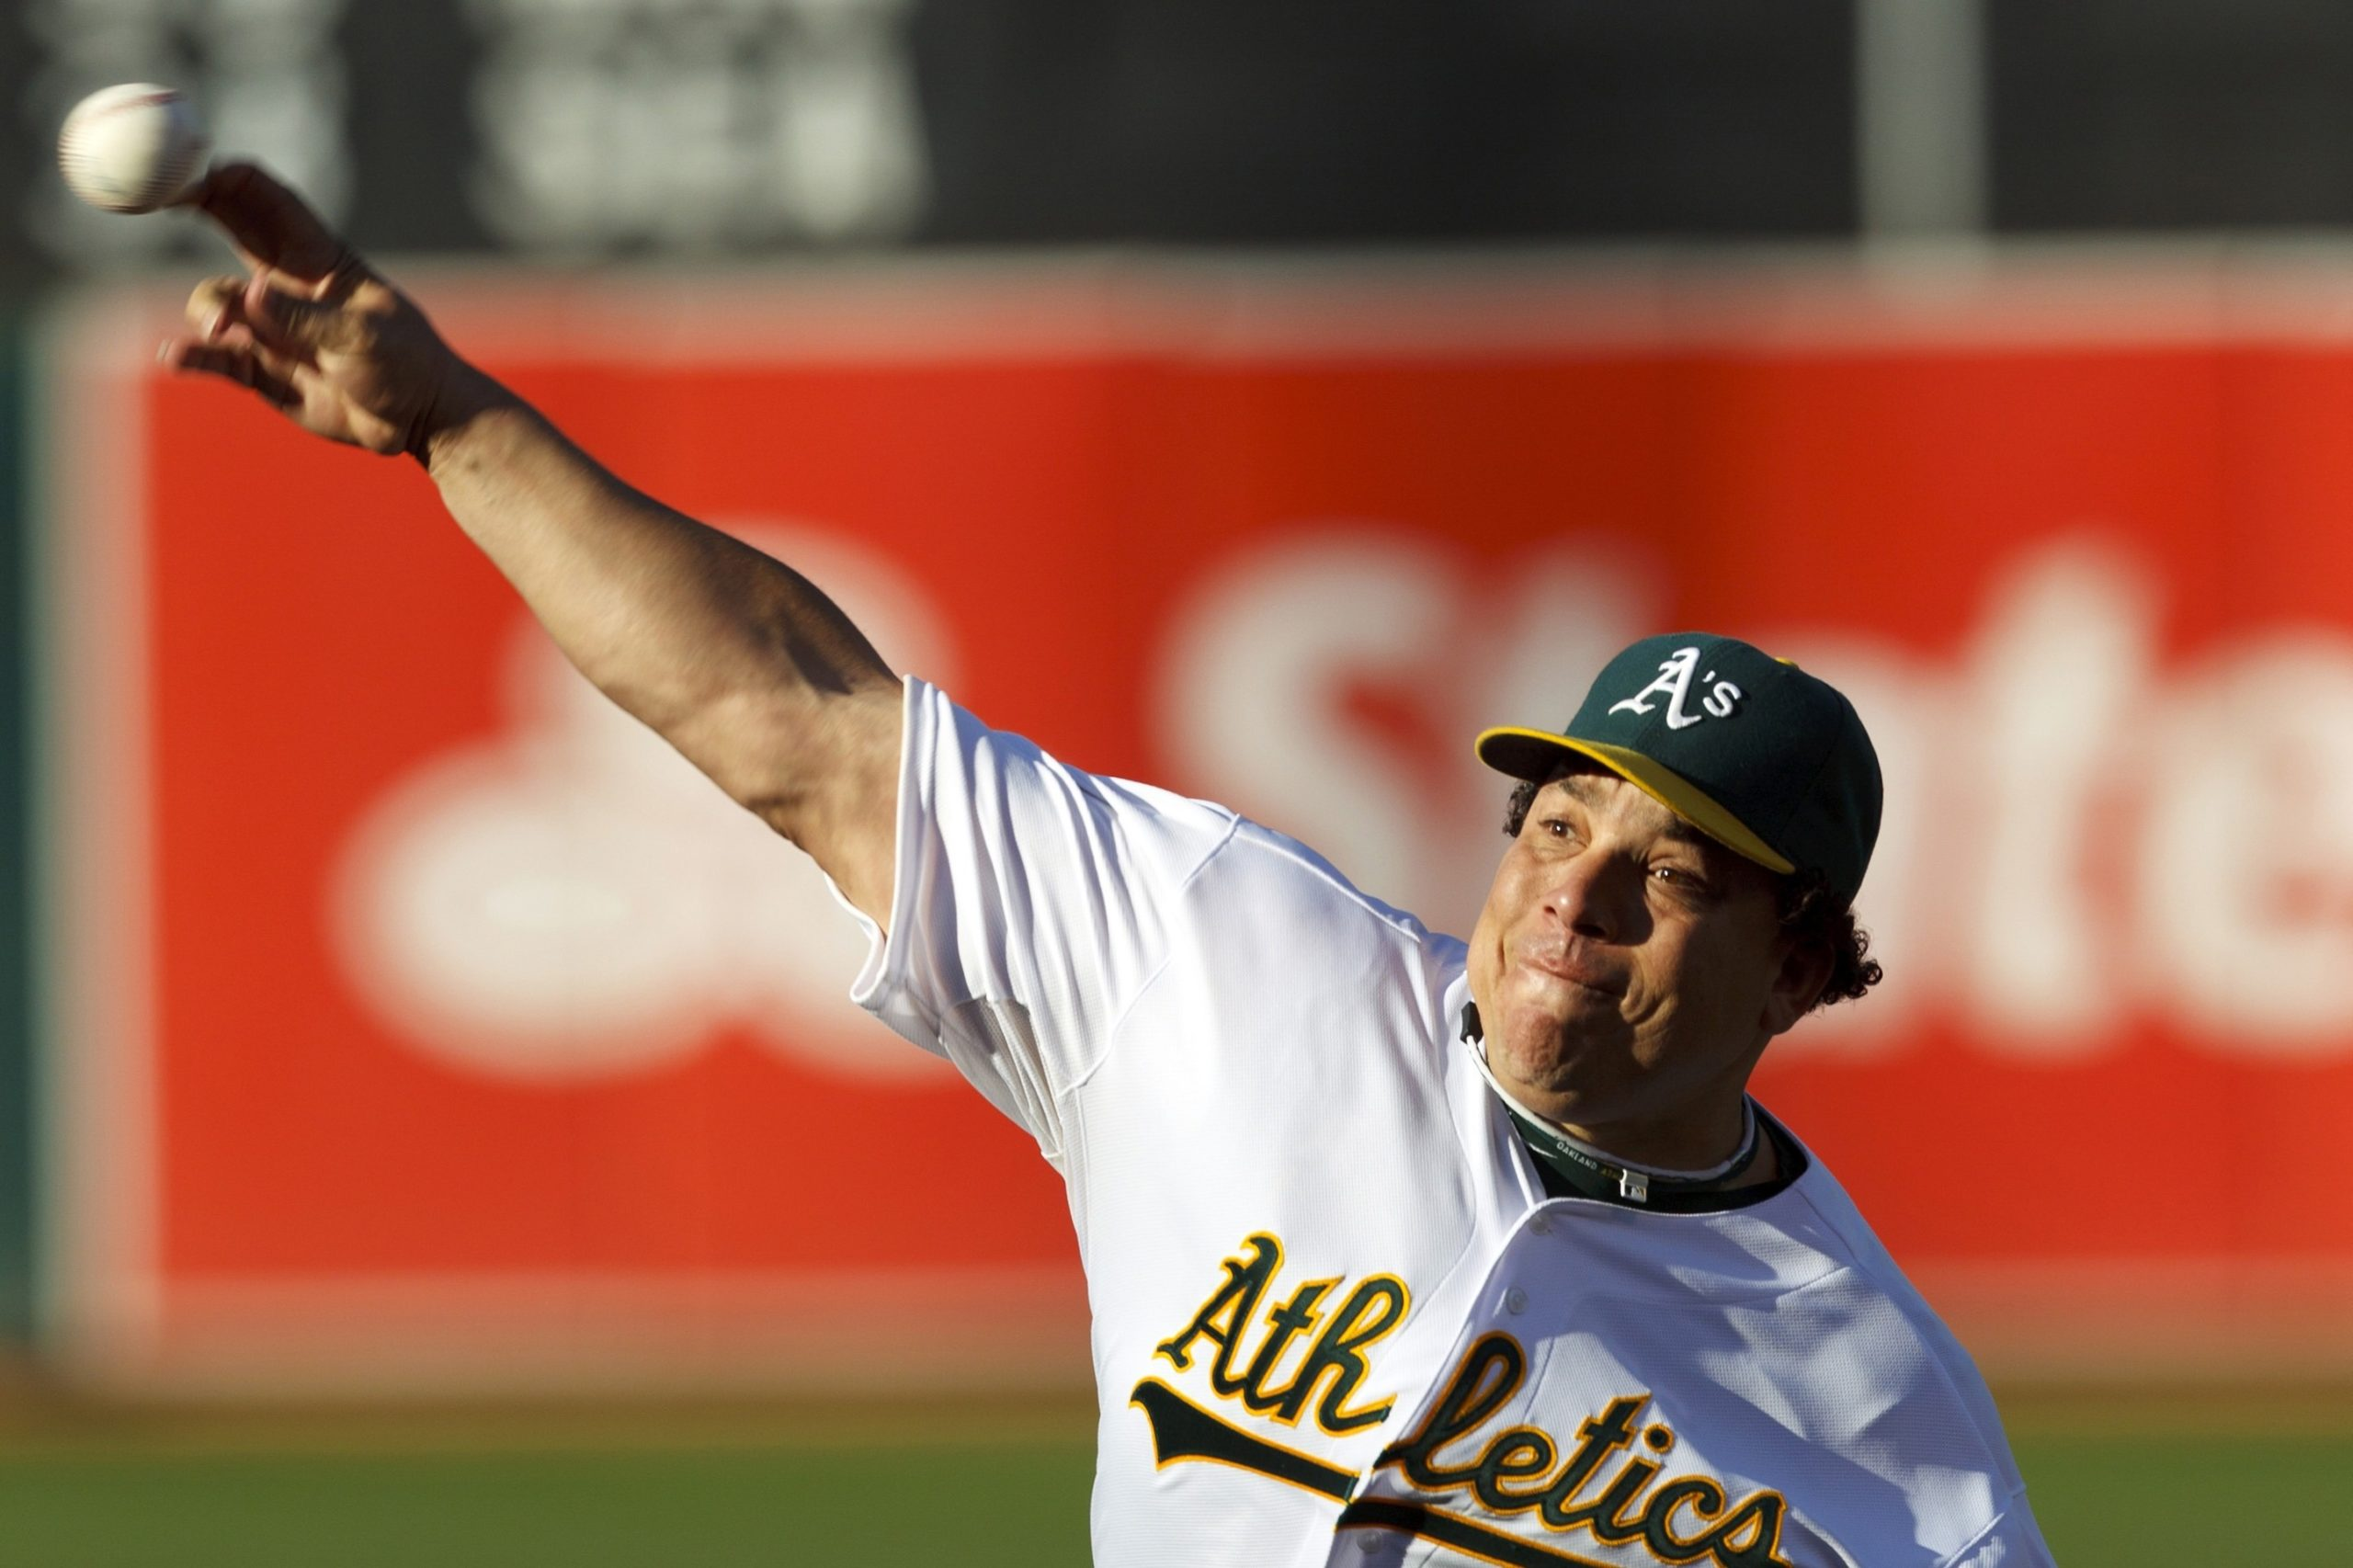 Oakland A's Pitcher Bartolo Colon Suspended for Performance Enhancing Drugs